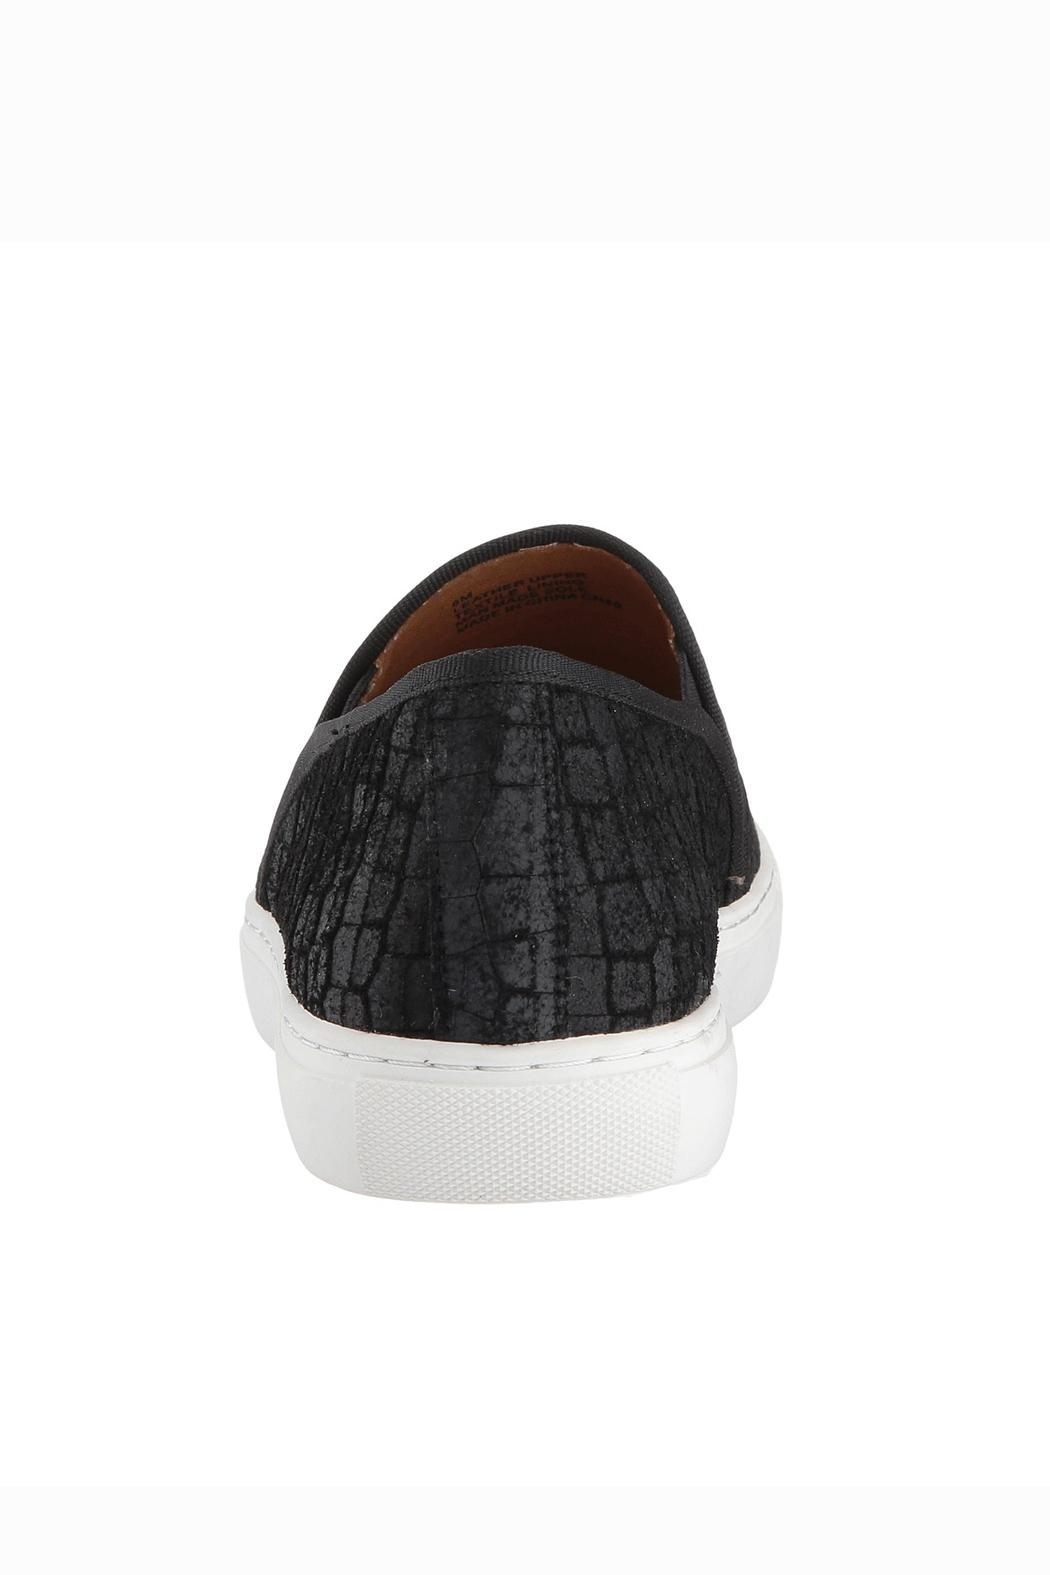 Corso Como Black Textured Slip On - Back Cropped Image